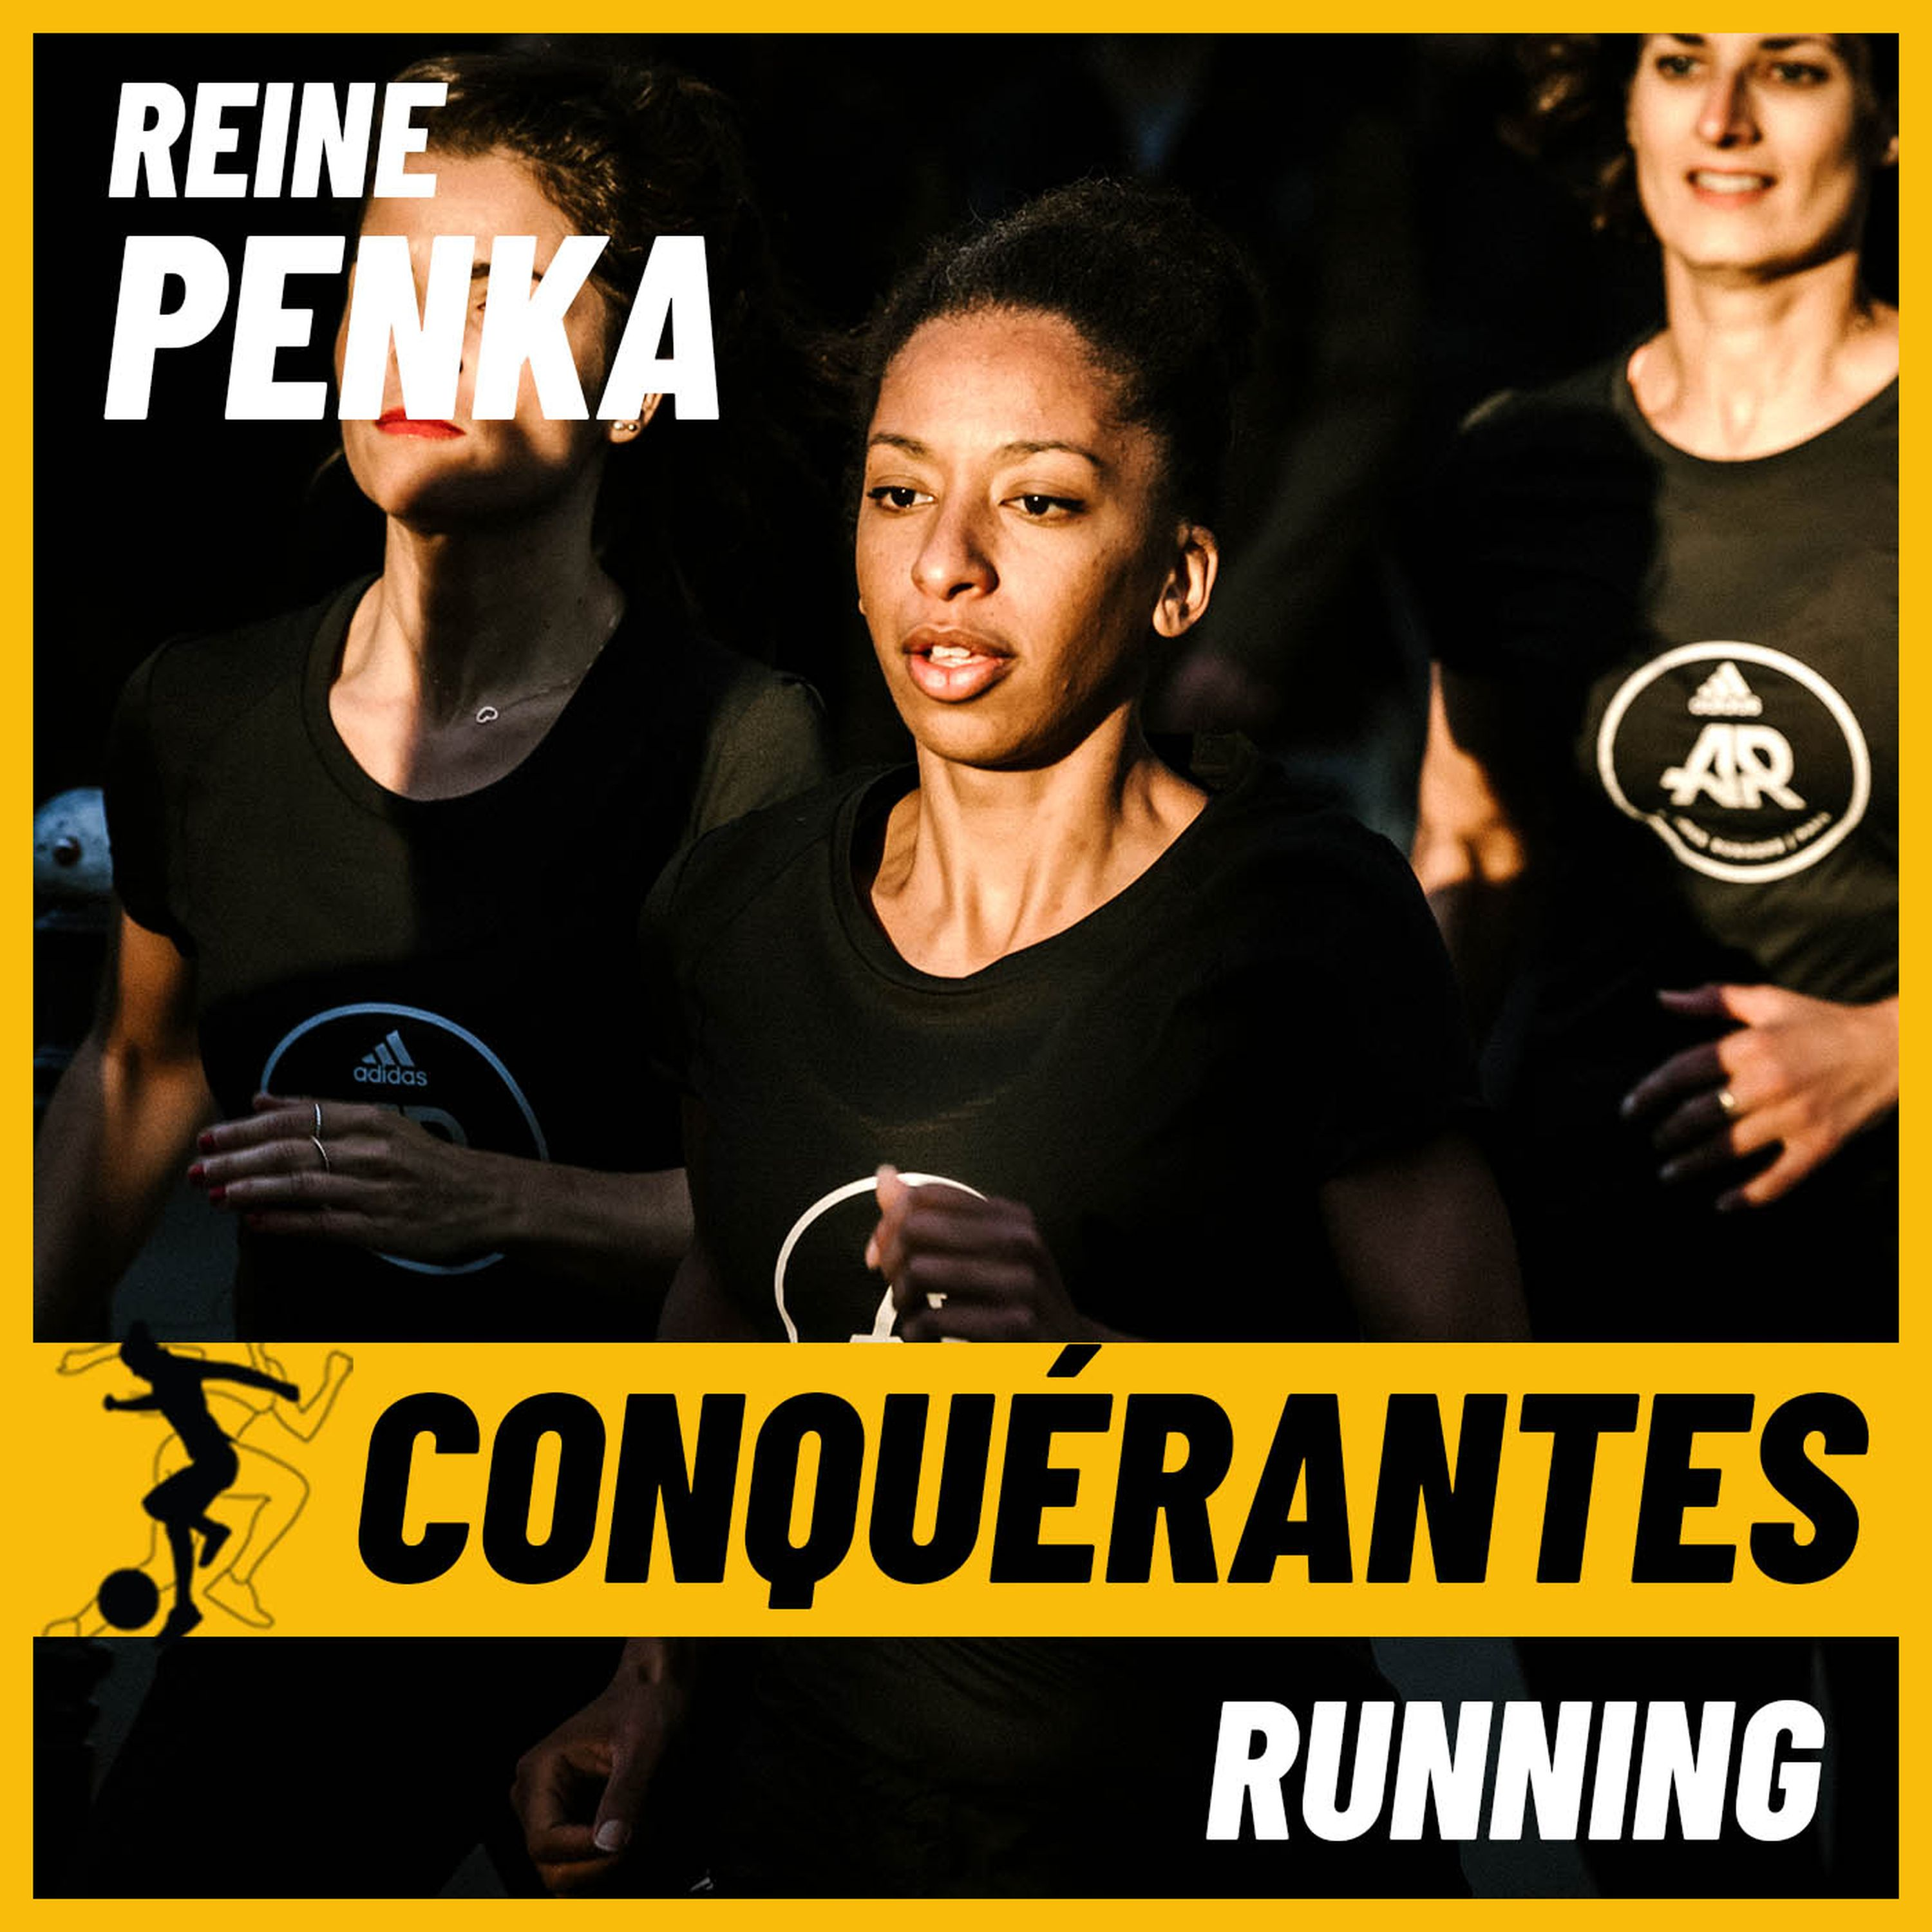 Le running, le plus collectif des sports individuels